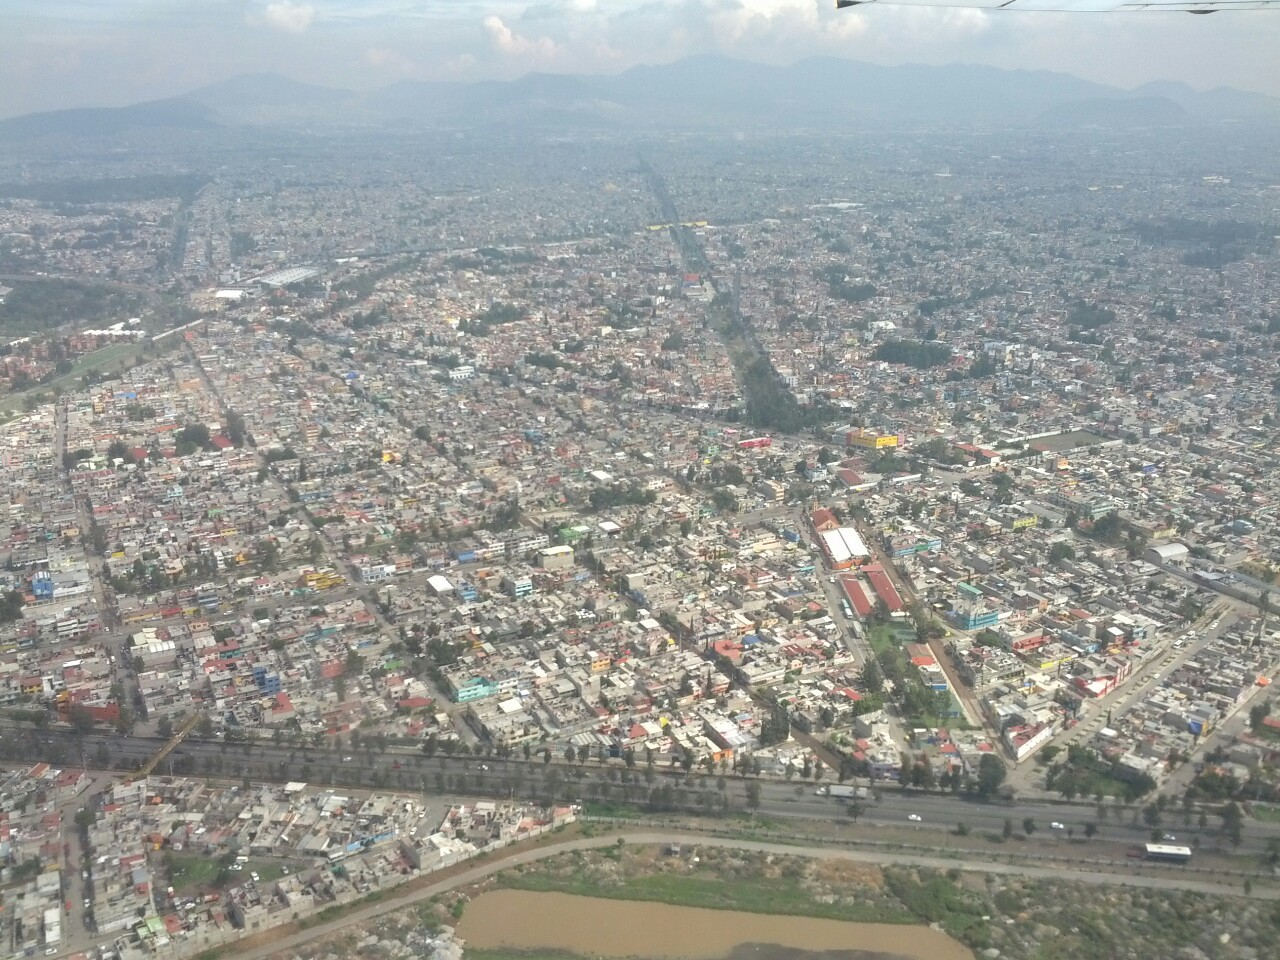 #2.  Mexico City from the air.